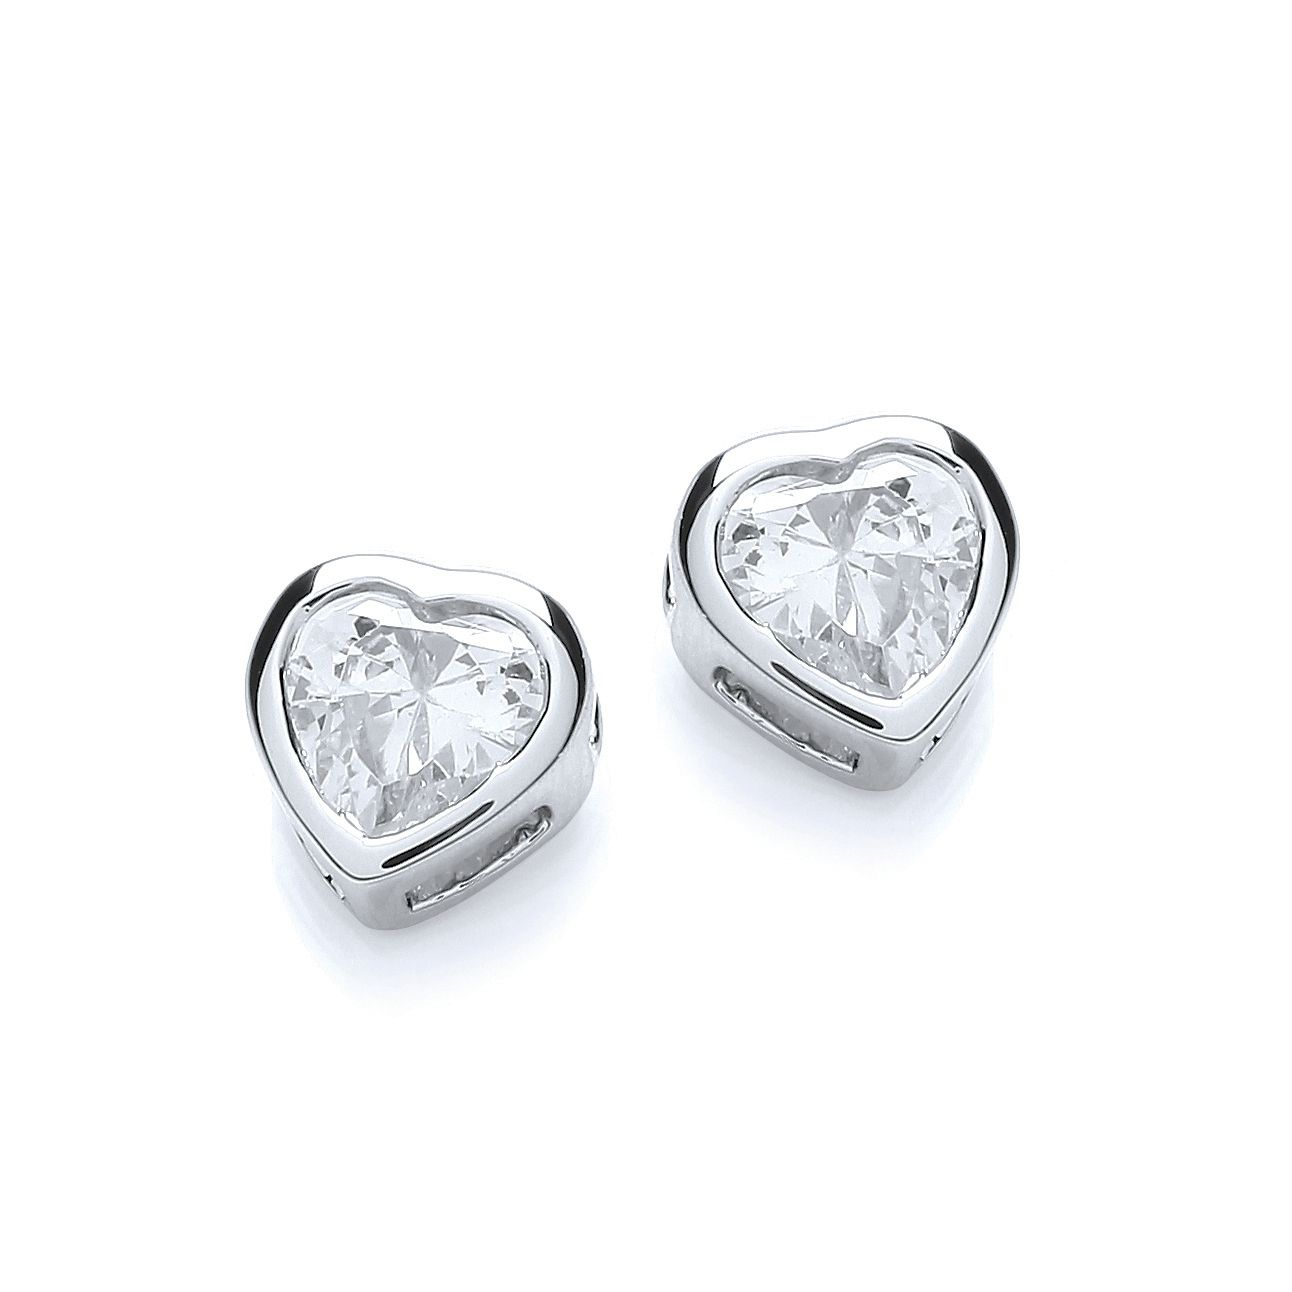 buckley london rhodium plate simple heart earrings